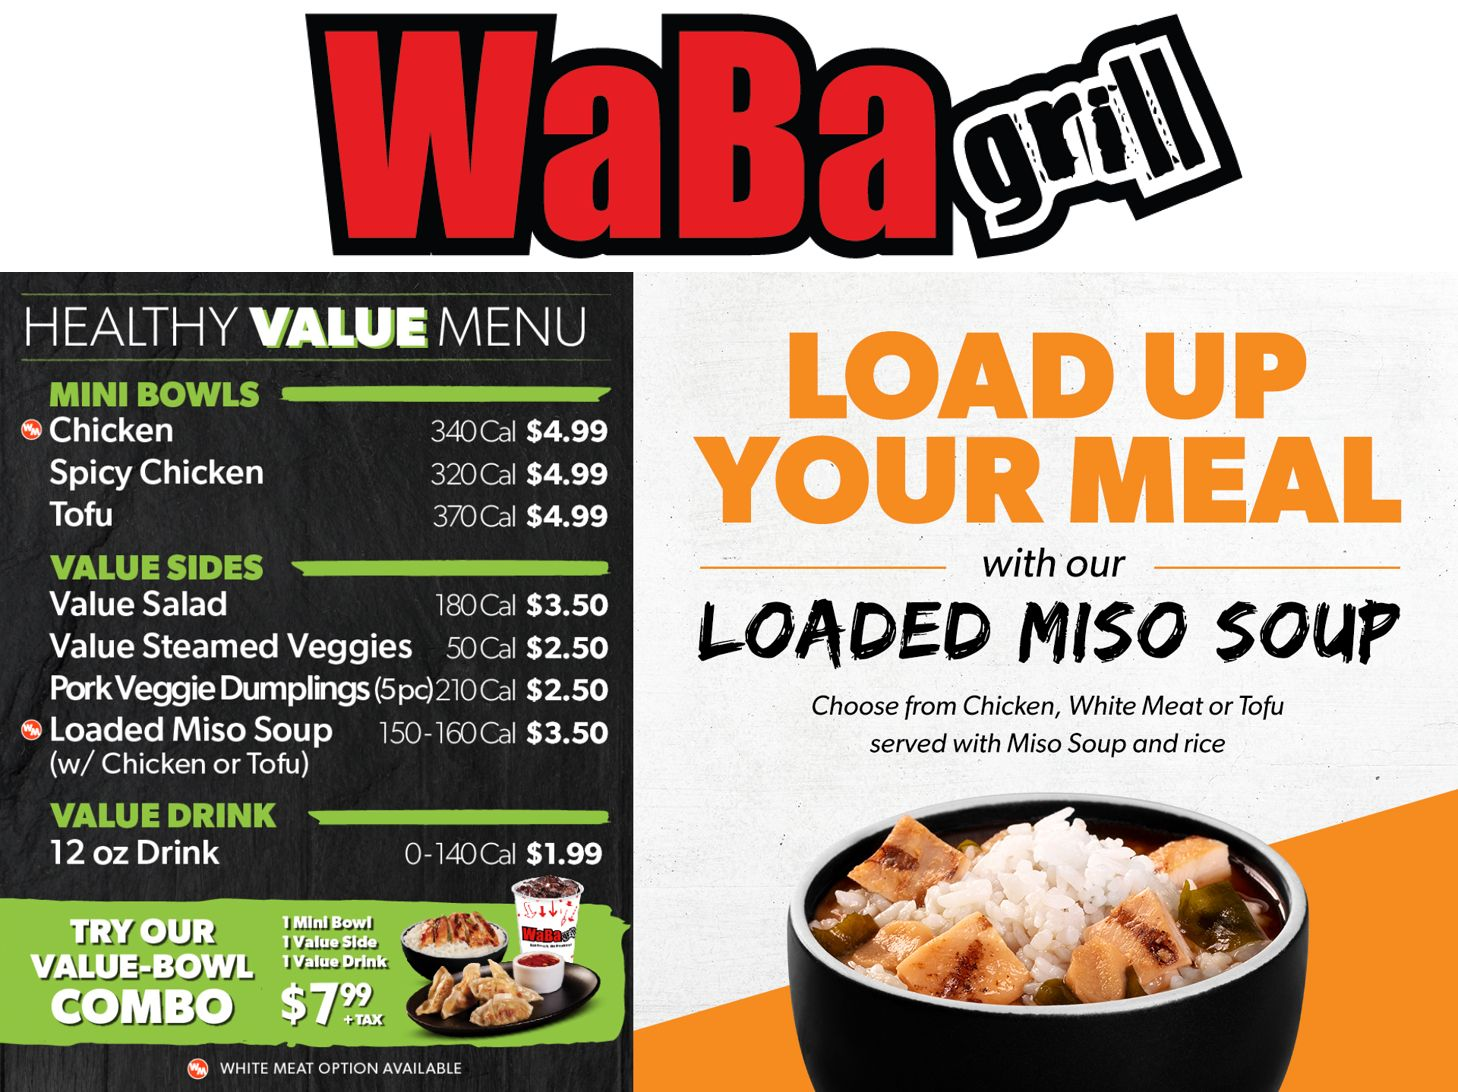 WaBa Grill's Healthy Value Menu and Loaded Miso Soup